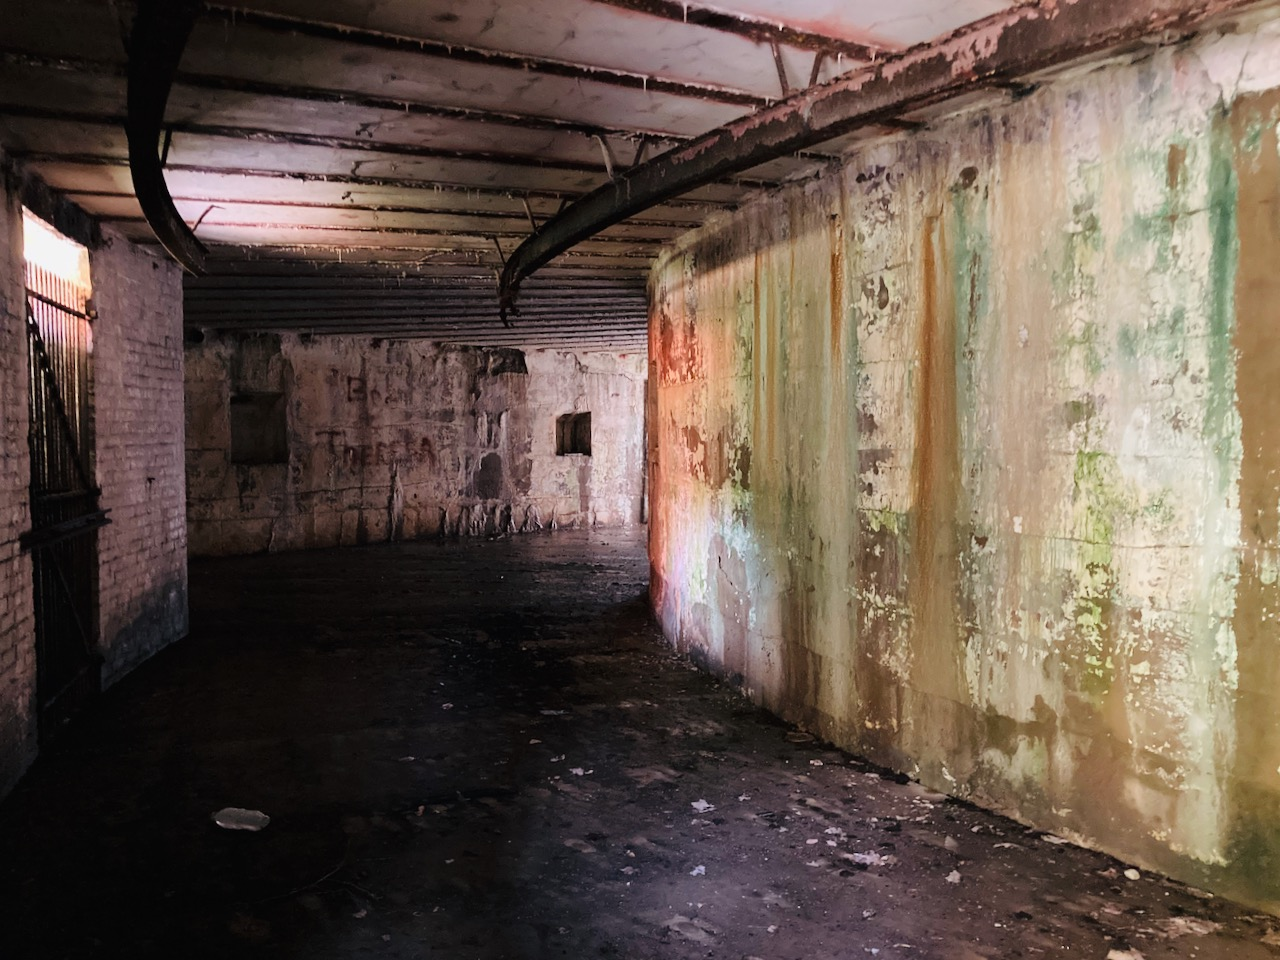 Interior of gun battery.